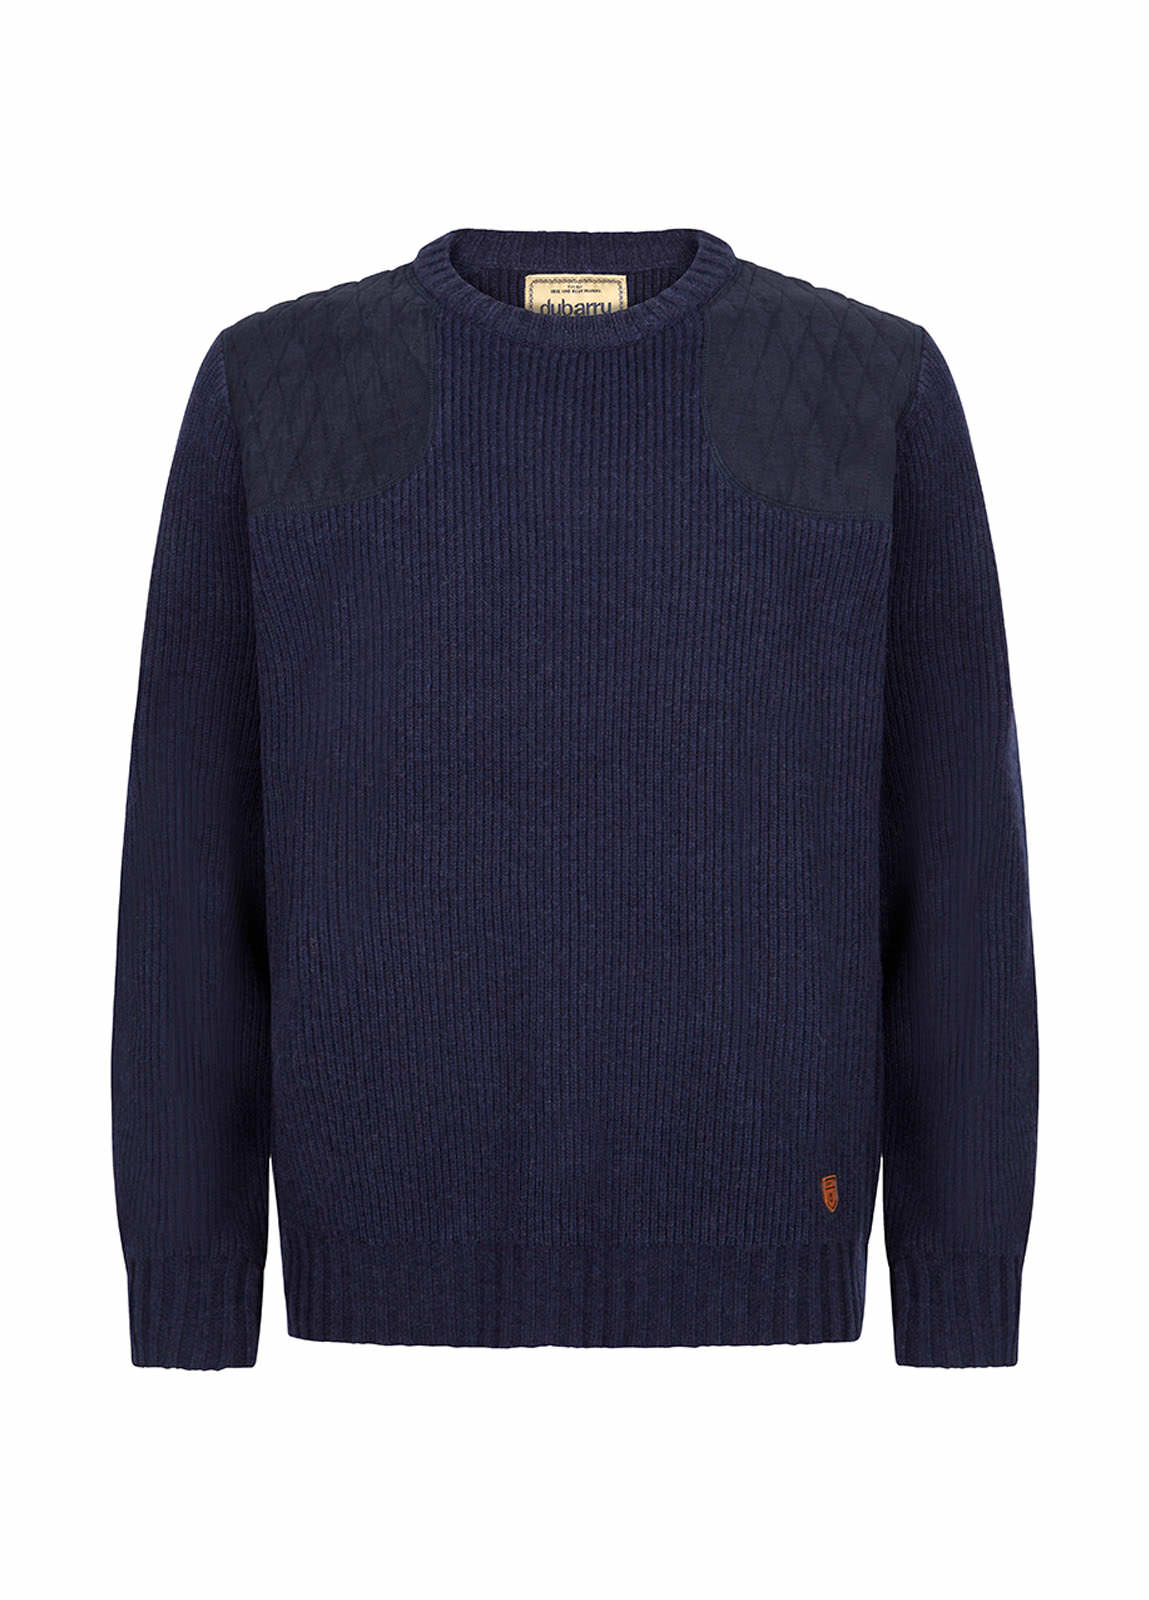 Mulligan Men's Sweater - Navy